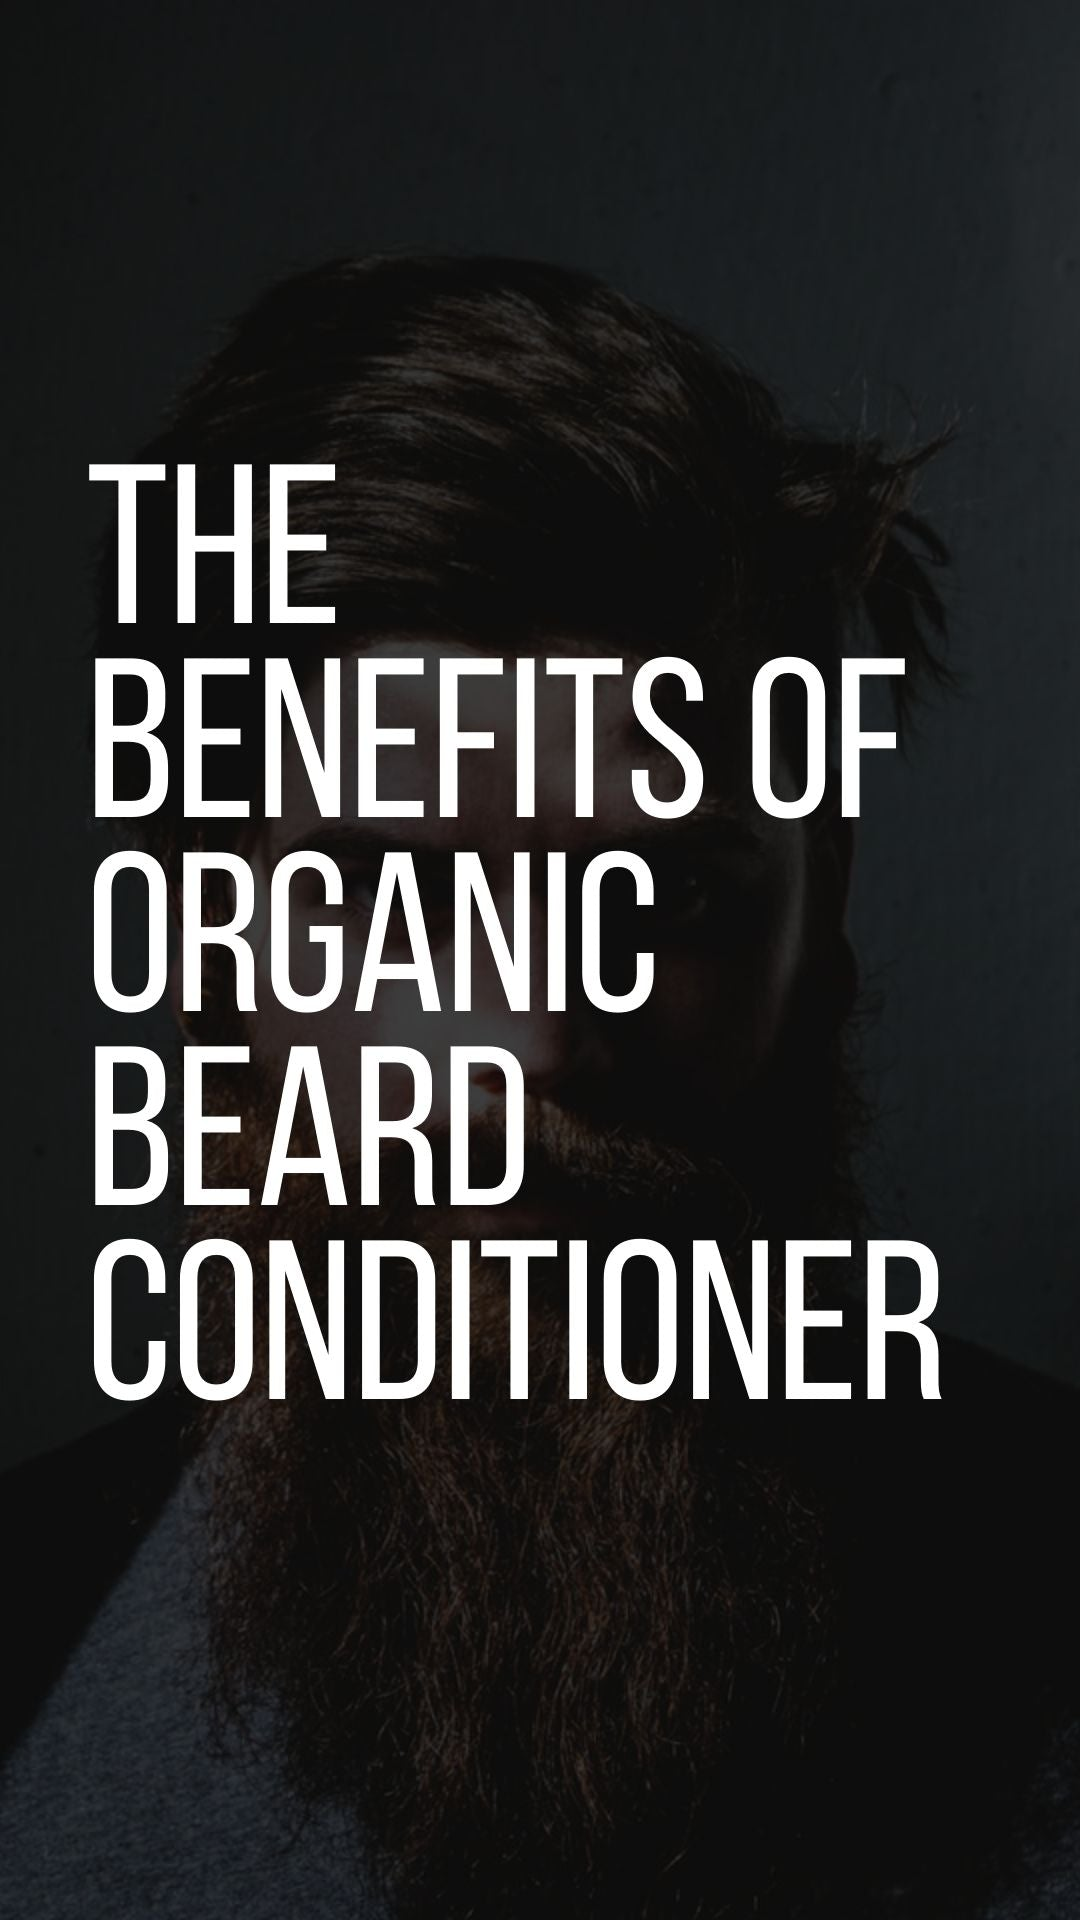 The Benefits of Organic Beard Conditioner